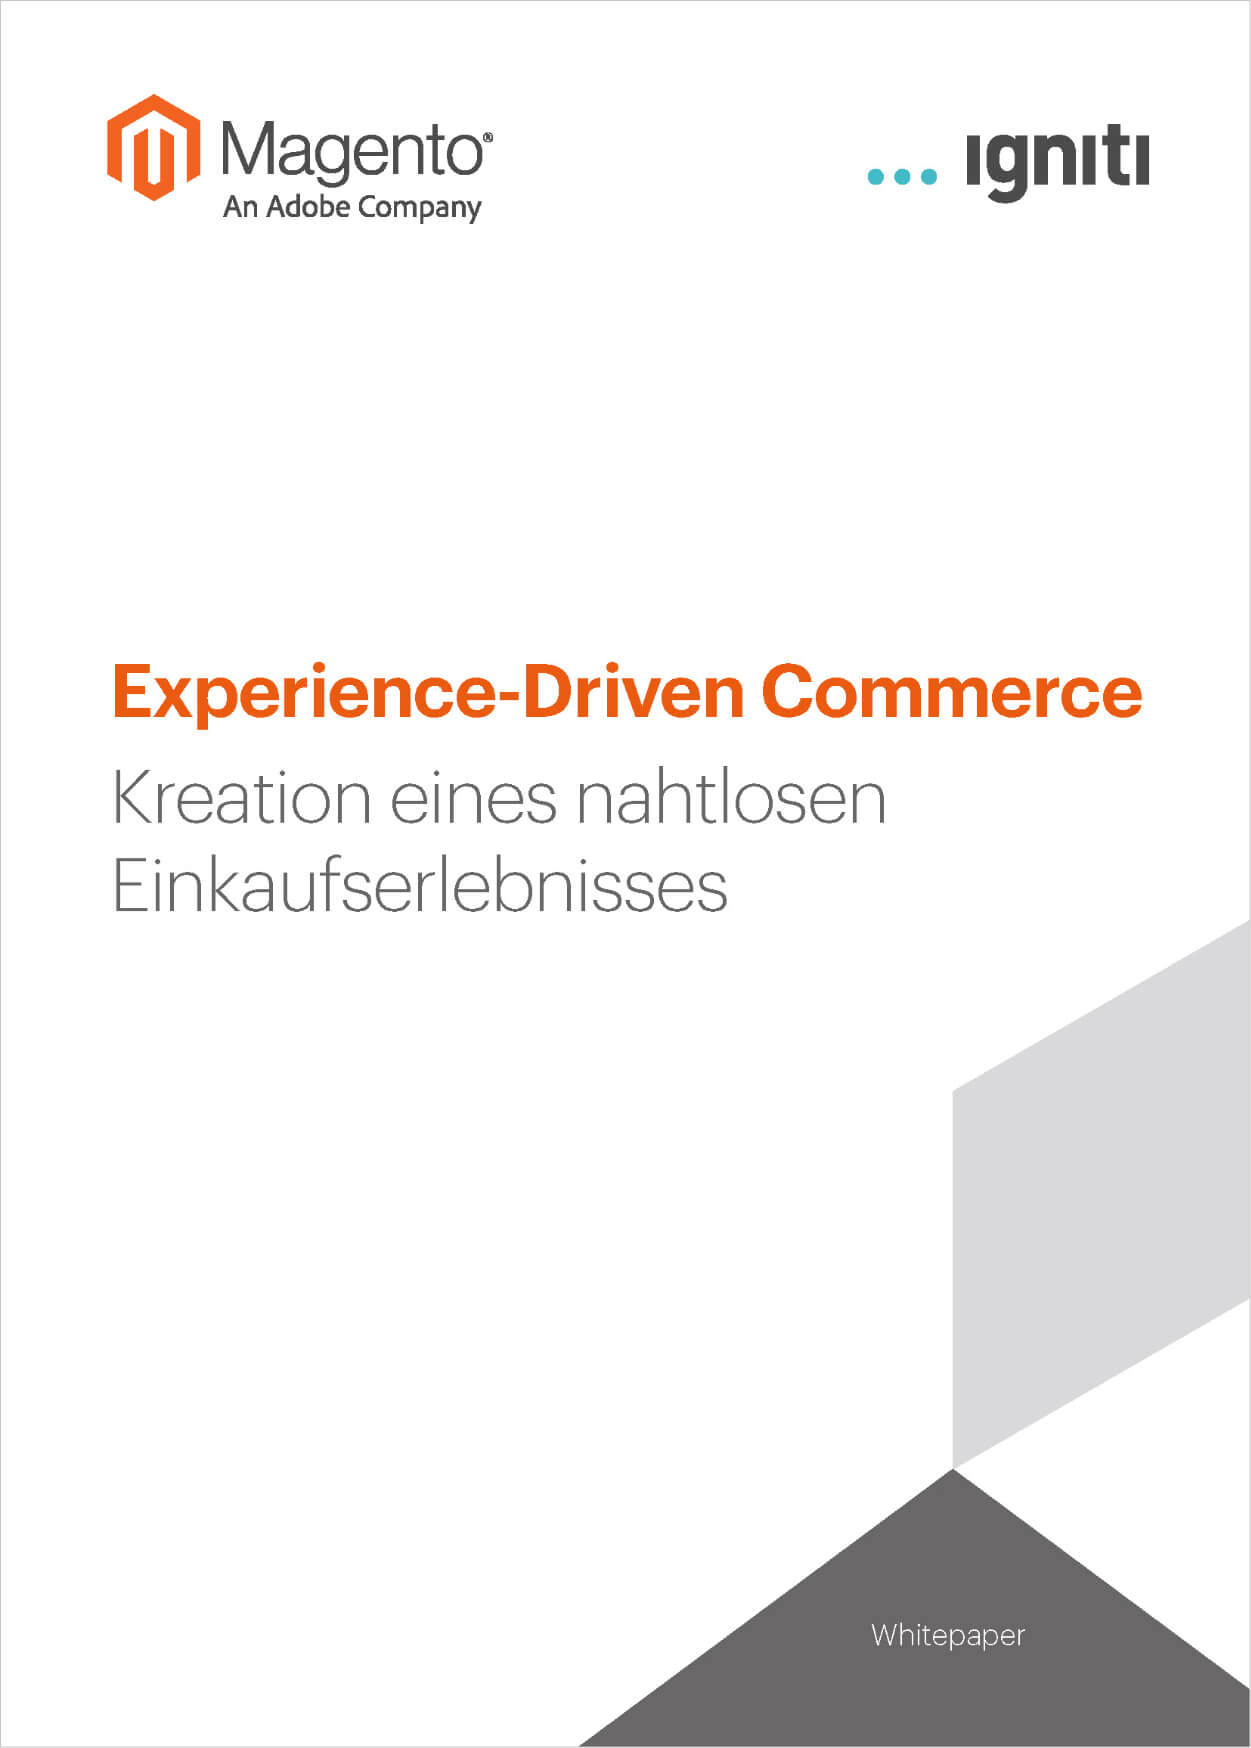 Whitepaper Experience Driven Commerce Magento | igniti